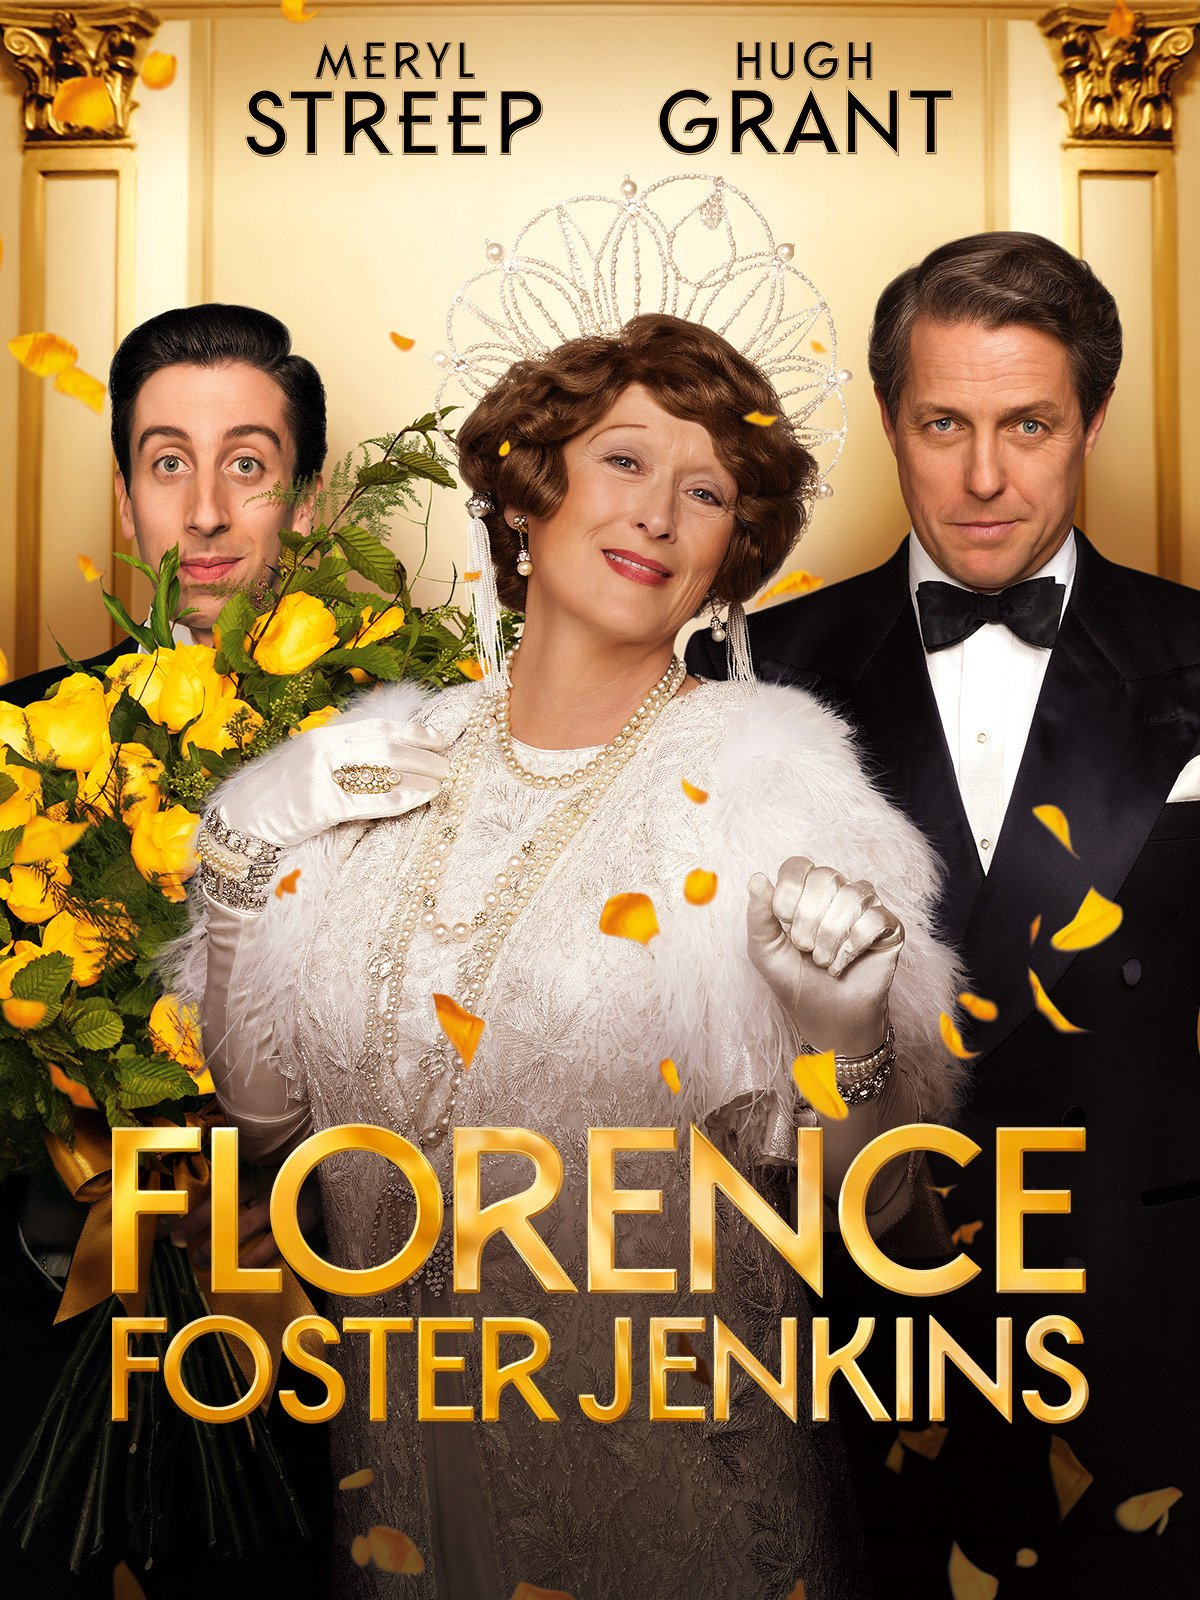 Florence Foster Jenkins by